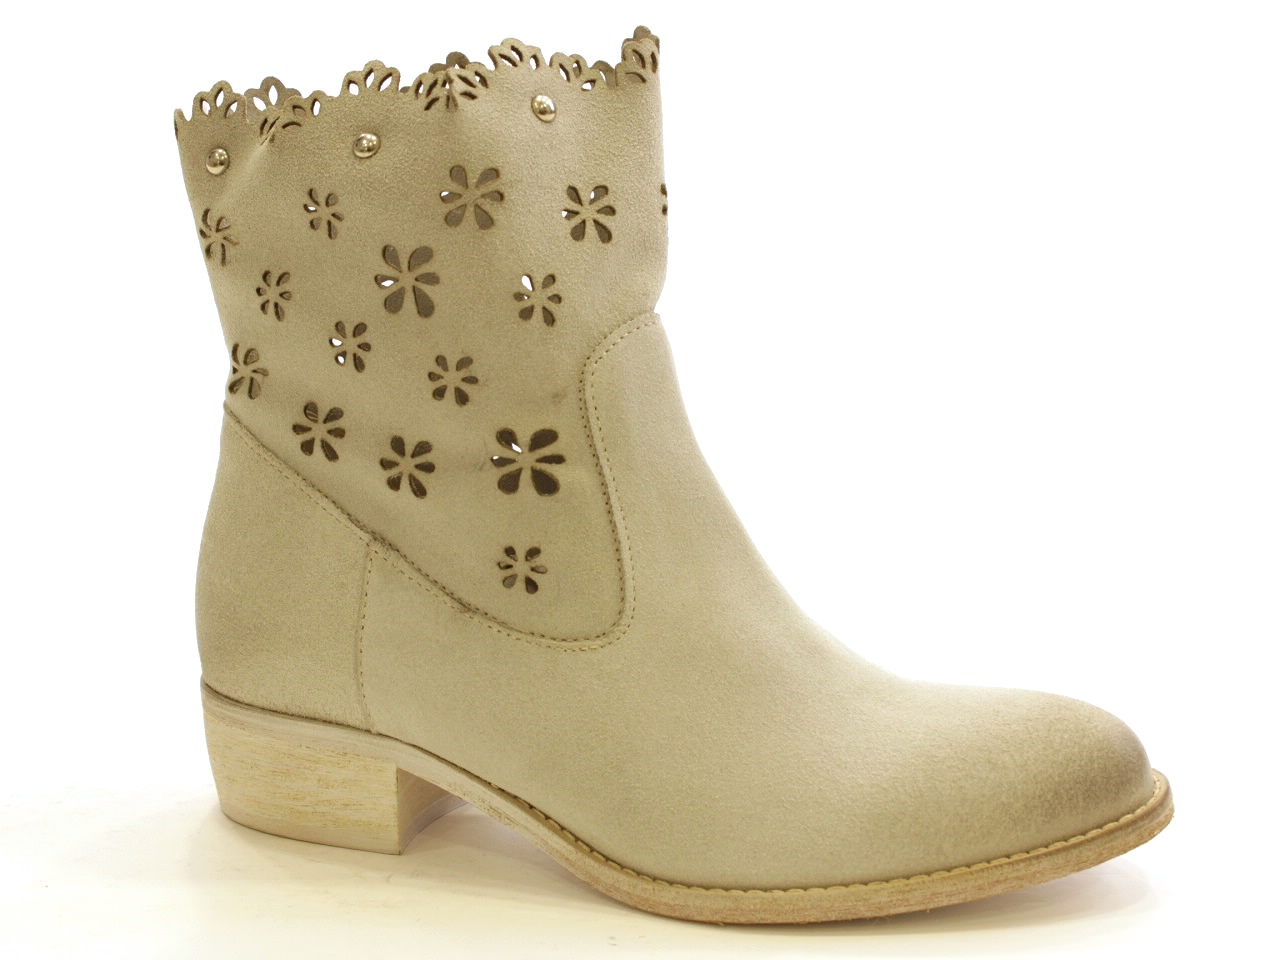 Flat Ankle Boots Sofia Costa - 085 6665